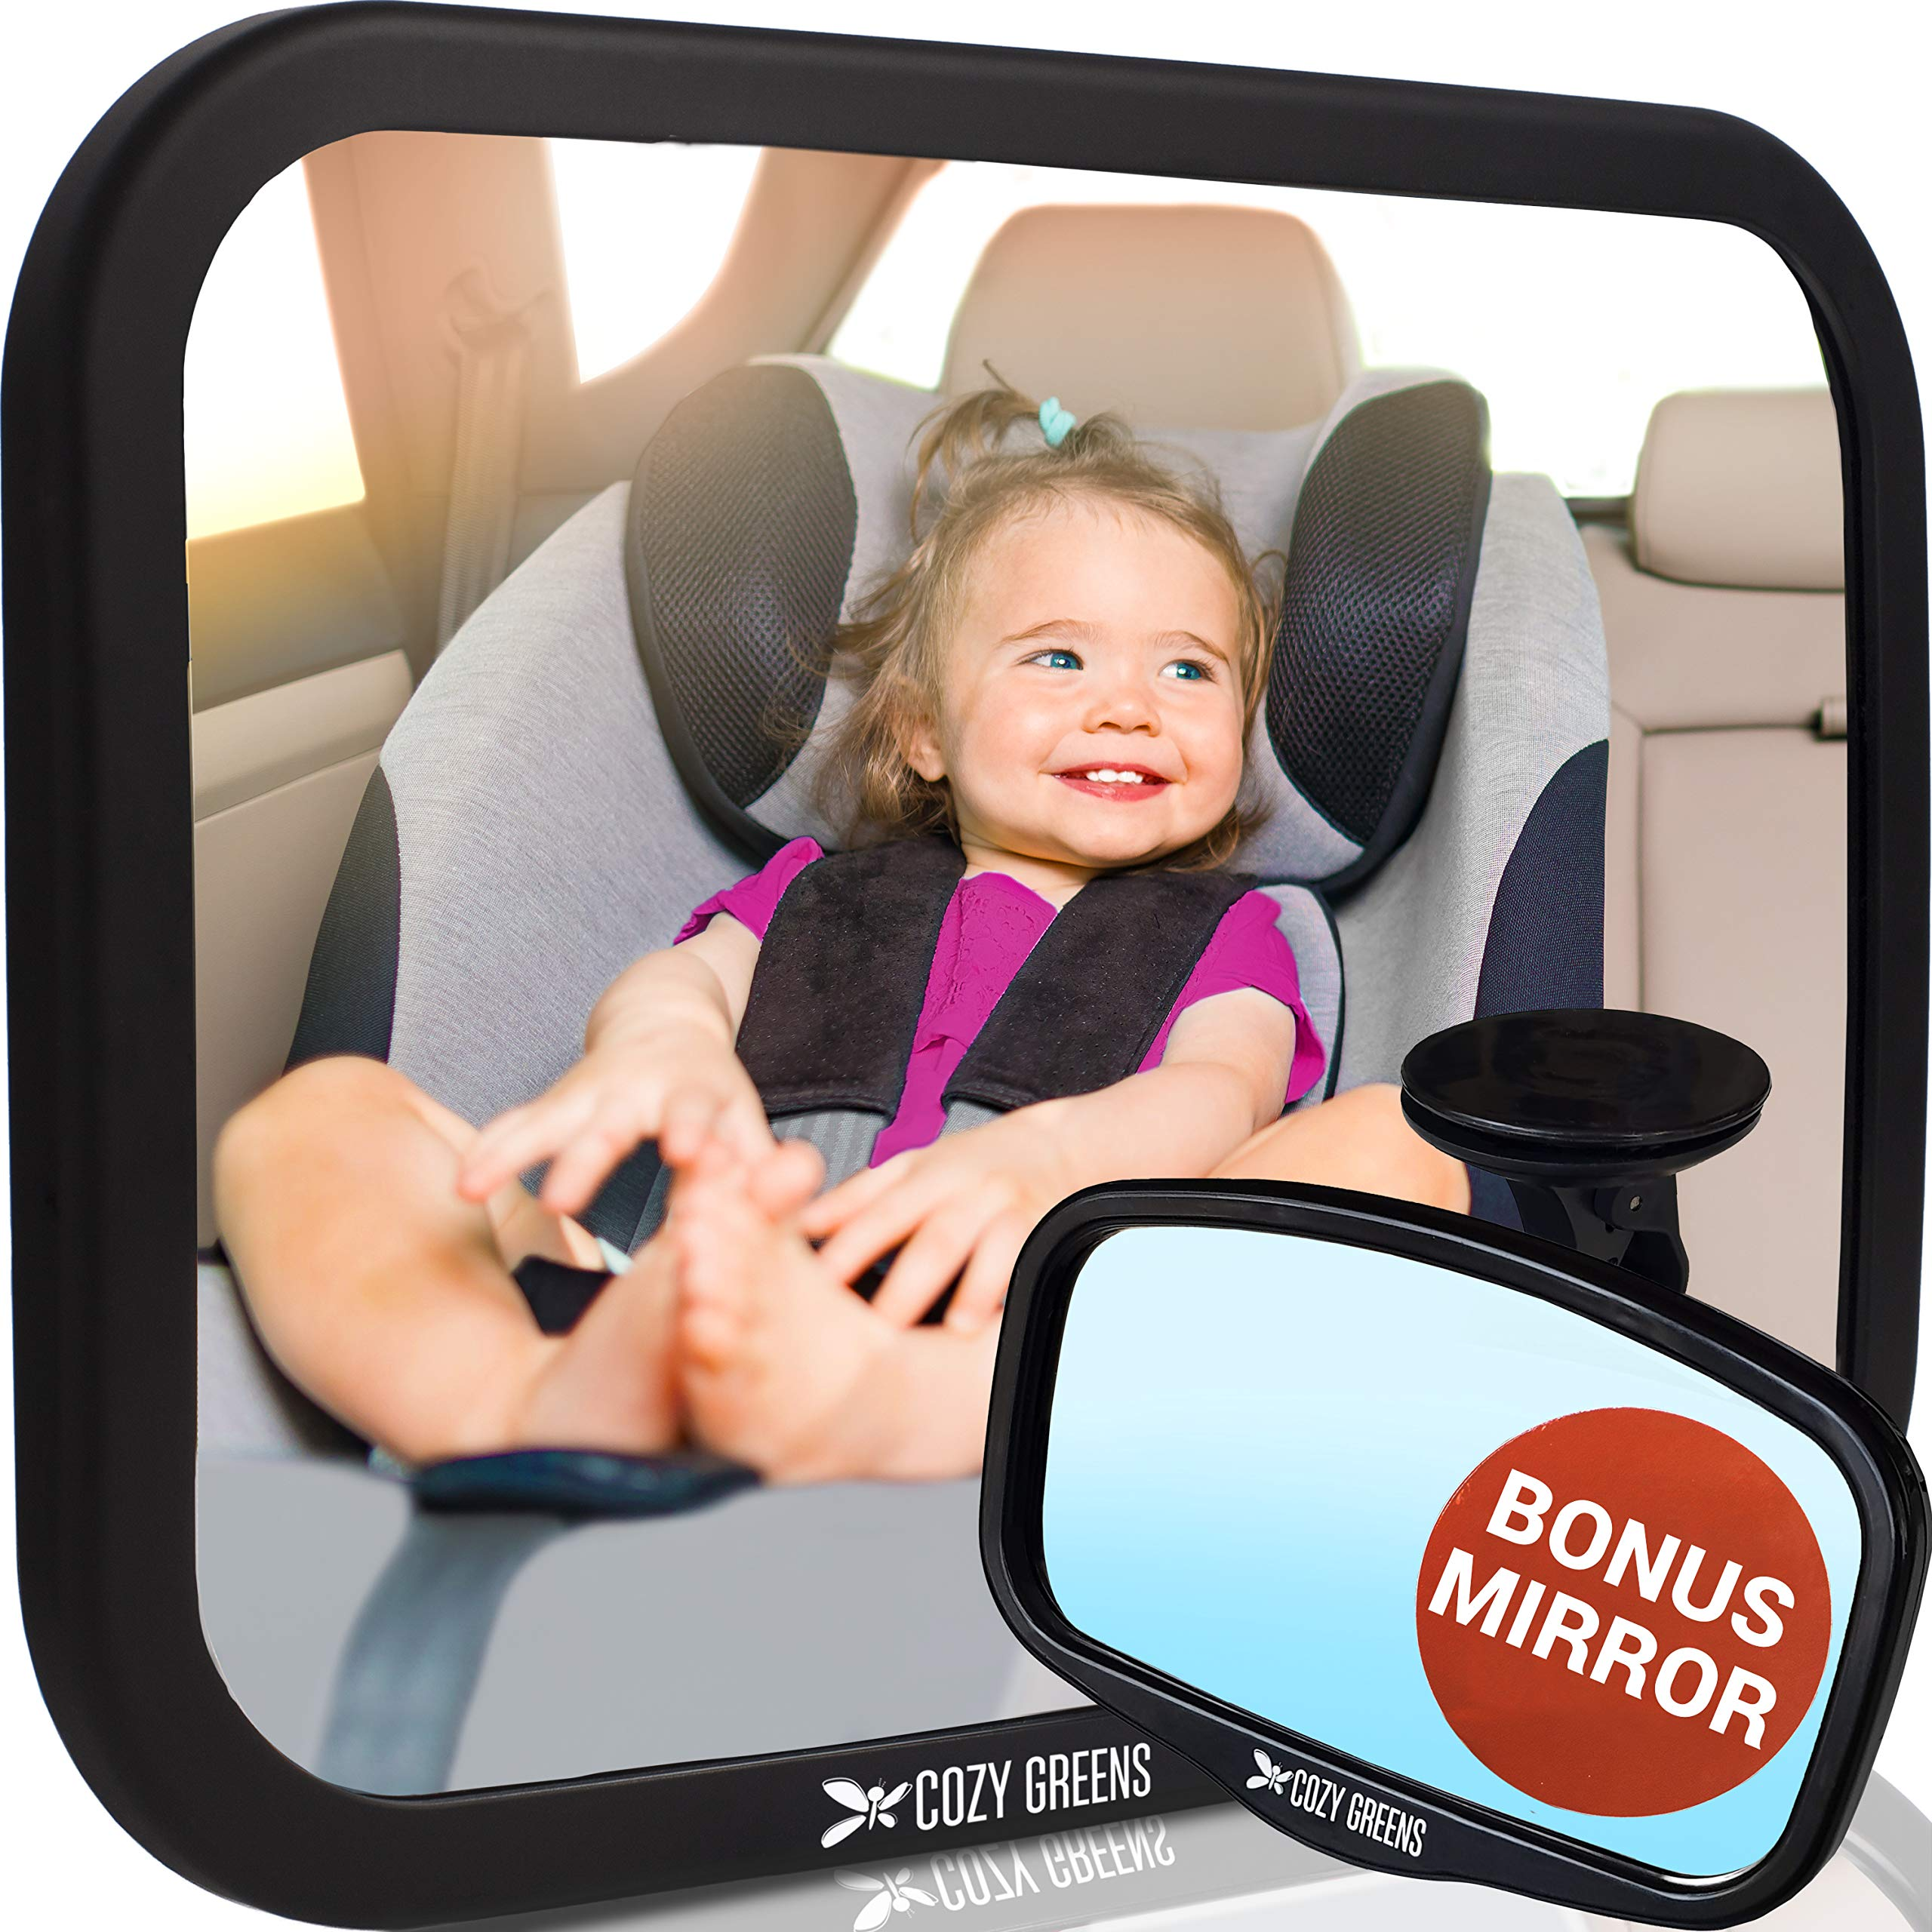 Baby Car Mirror XL w/Upgraded Ball Joint| Most Stable | 100% Lifetime Satisfaction Guarantee | Shatterproof & Crash Tested | Best Newborn Safety | Backseat Mirror for Car Back Seat Carseat | Matte